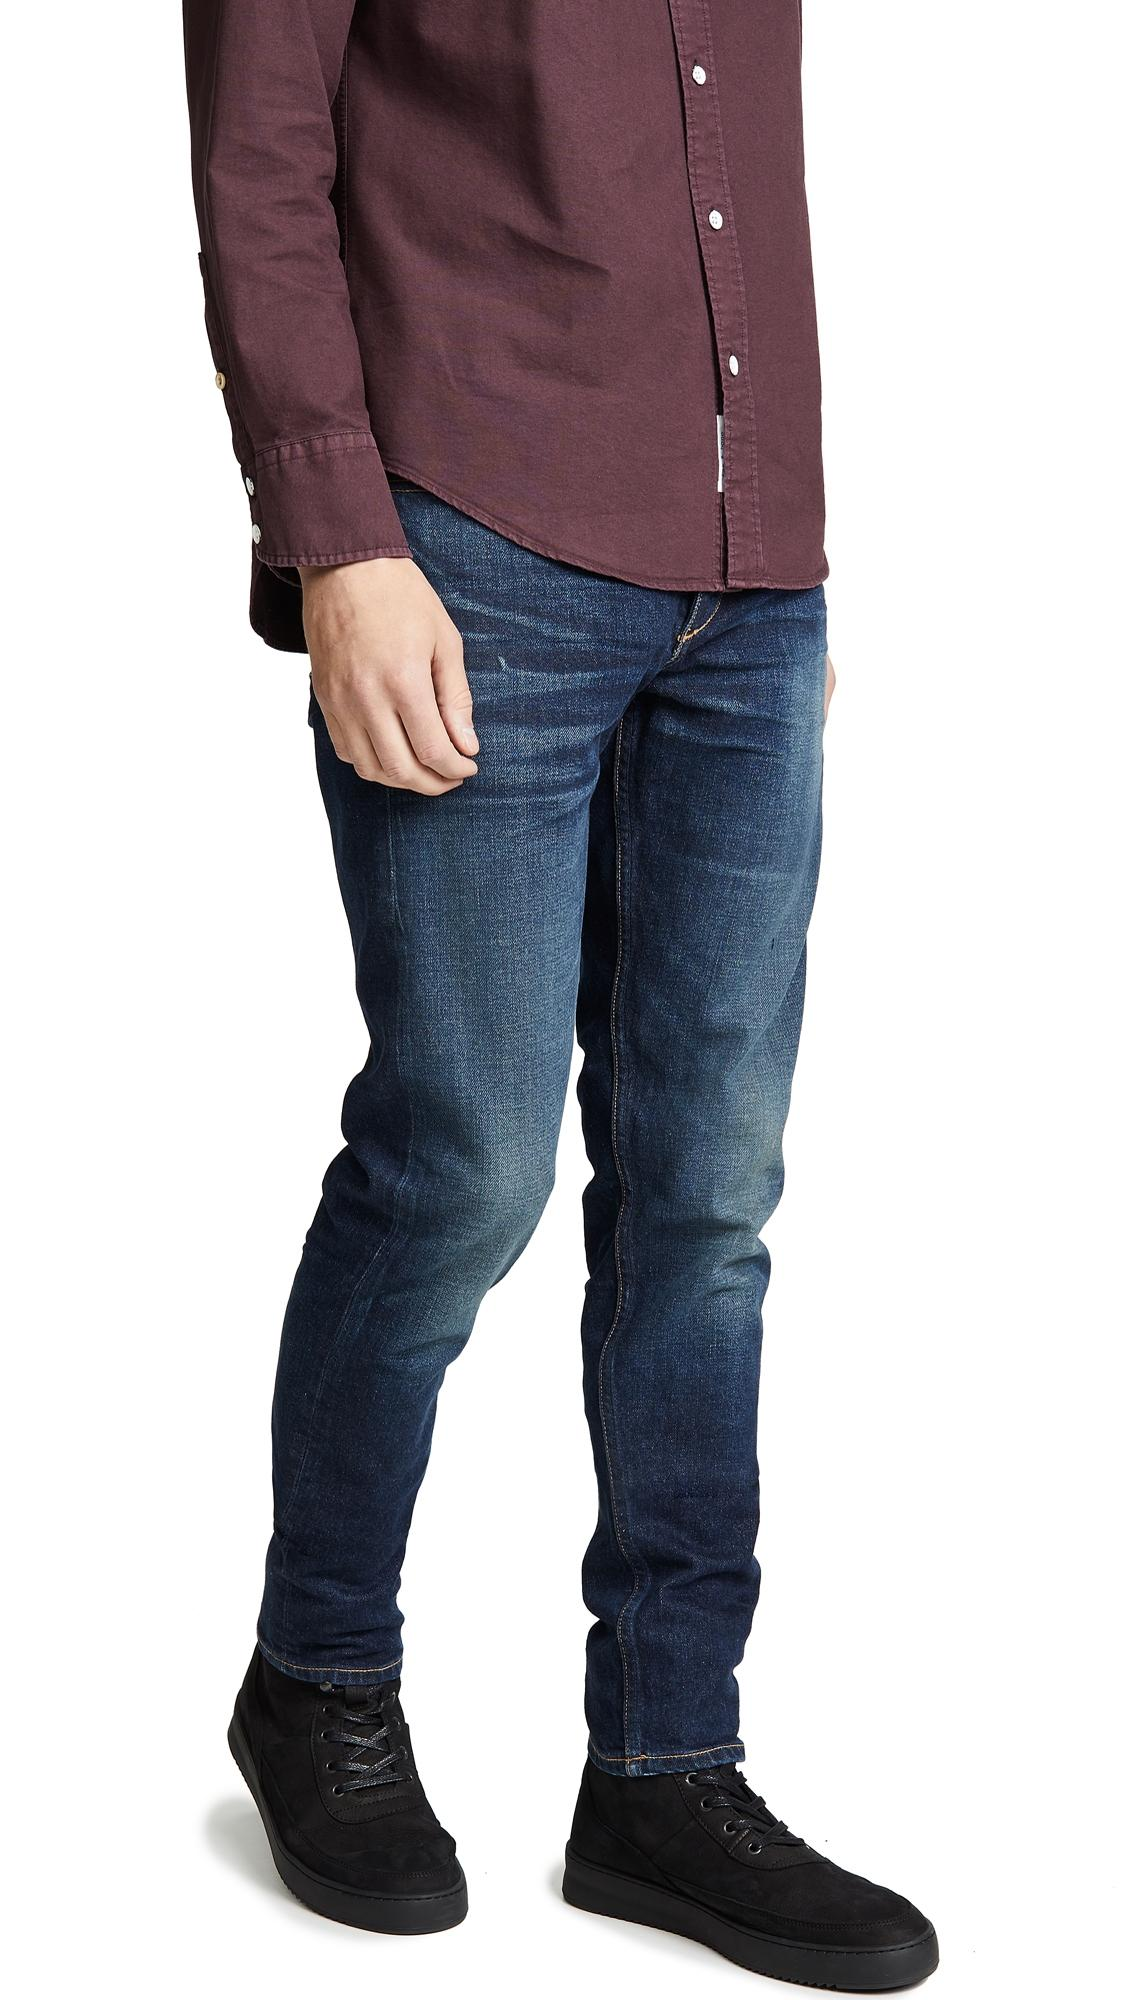 Rag & Bone Fit 2 Jeans In Worn Ace